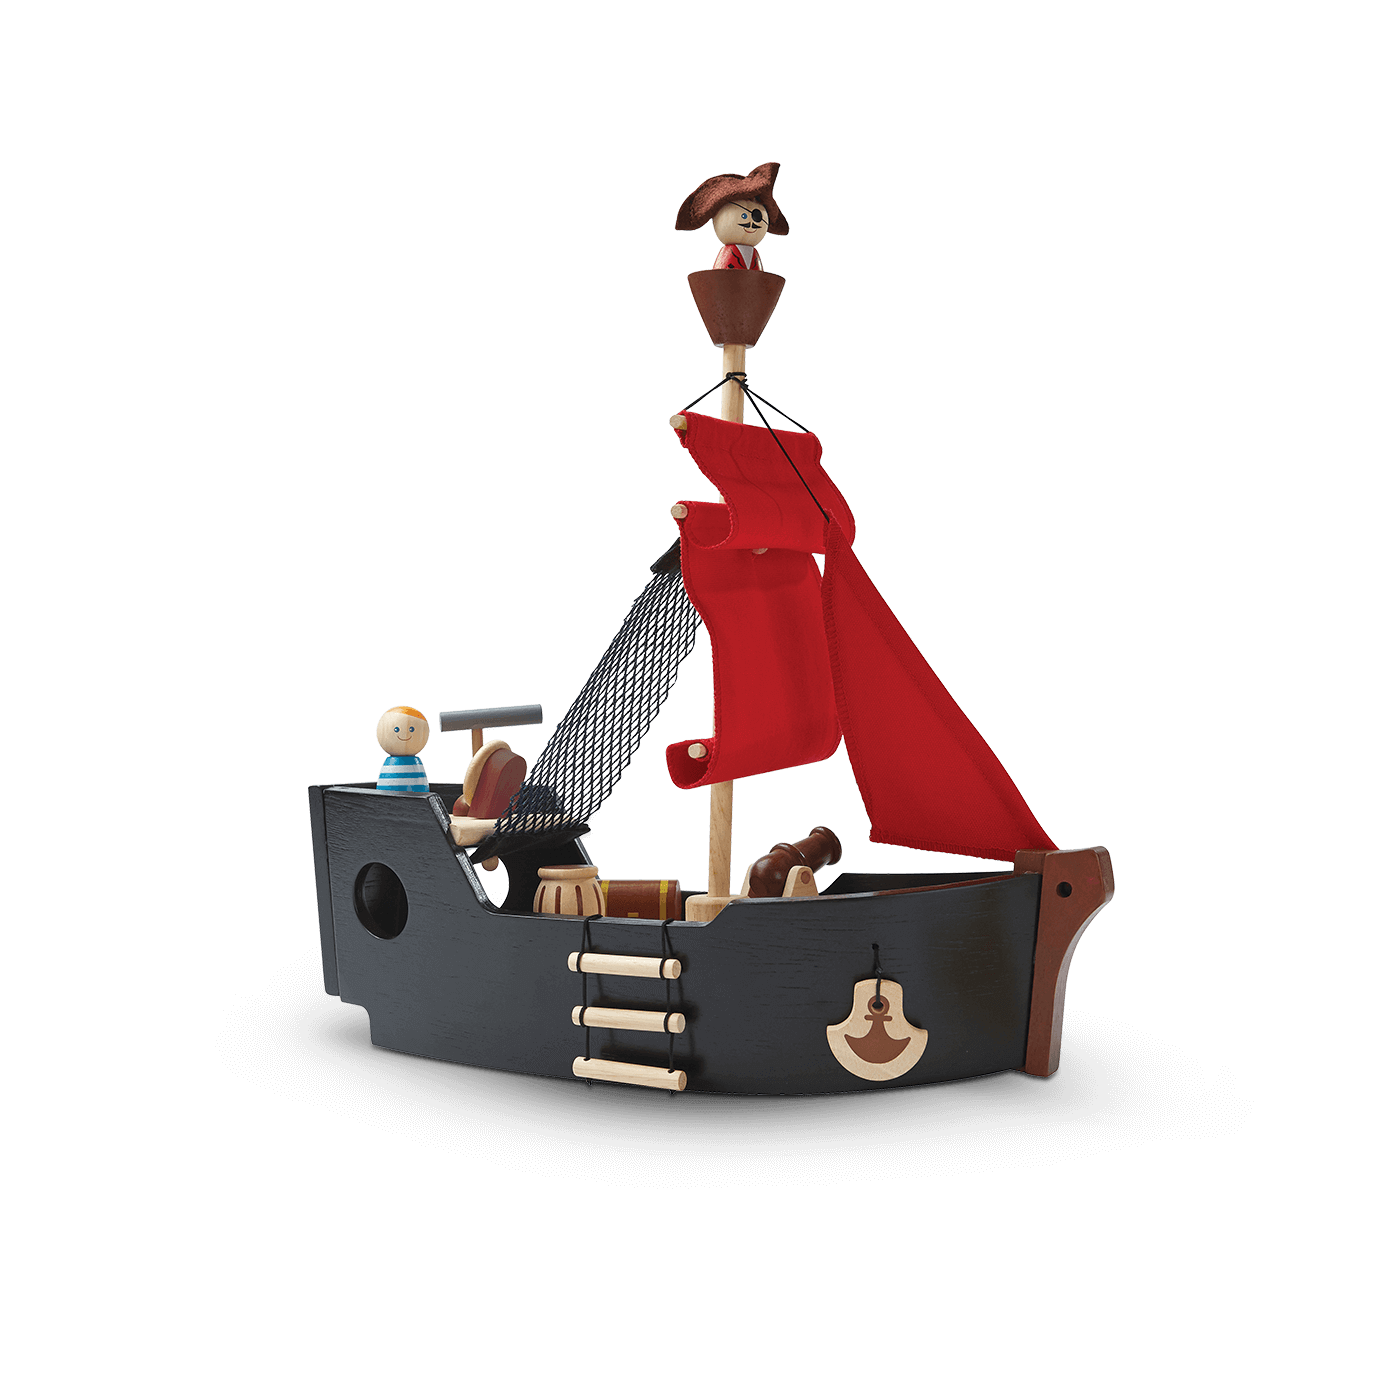 6114_PlanToys_PIRATE_SHIP_Pretend_Play_Imagination_Creative_Coordination_Language_and_Communications_Social_Emotion_3yrs_Wooden_toys_Education_toys_Safety_Toys_Non-toxic_0.png